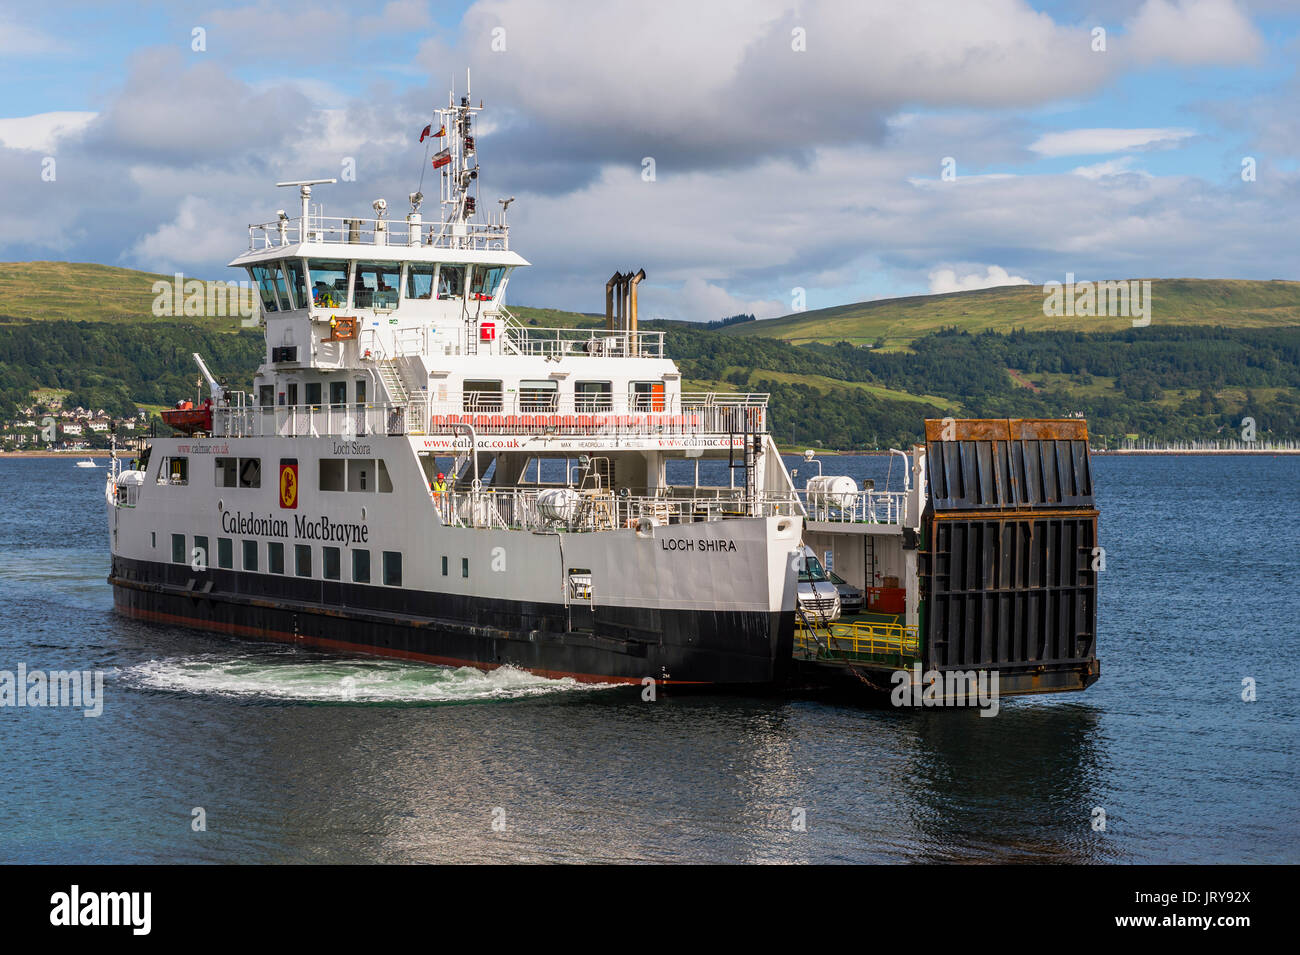 Millport, Scotland - August 3, 2017: The Loch Shira operated by Caledonian MacBrayne (CalMac) arriving at the slip on the Isle of Cumbrae - Stock Image